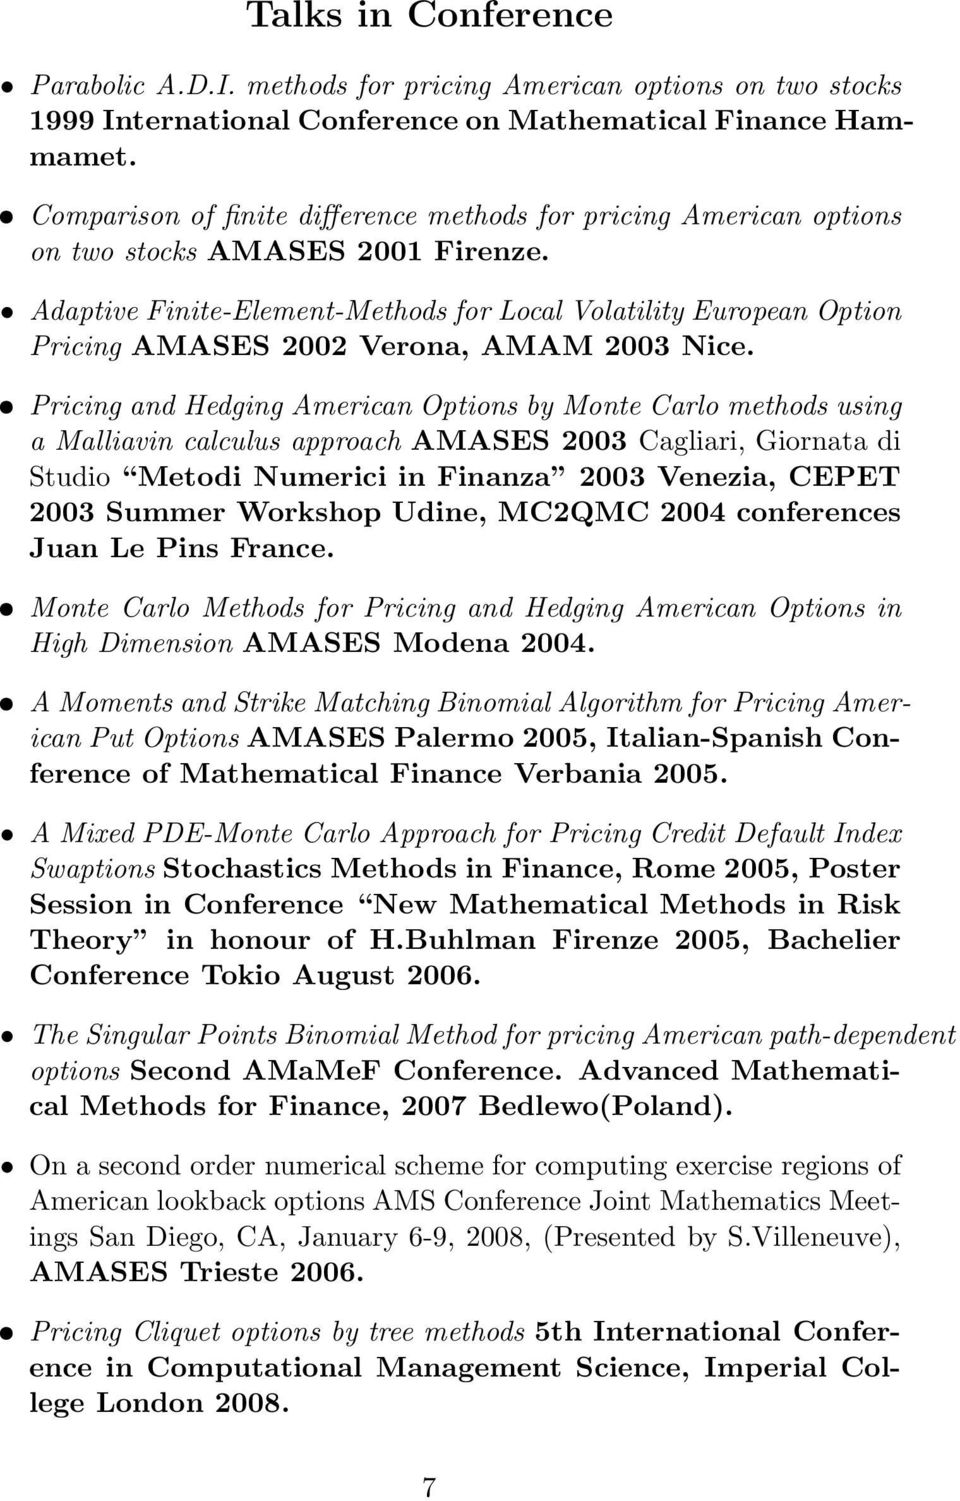 Adaptive Finite-Element-Methods for Local Volatility European Option Pricing AMASES 2002 Verona, AMAM 2003 Nice.